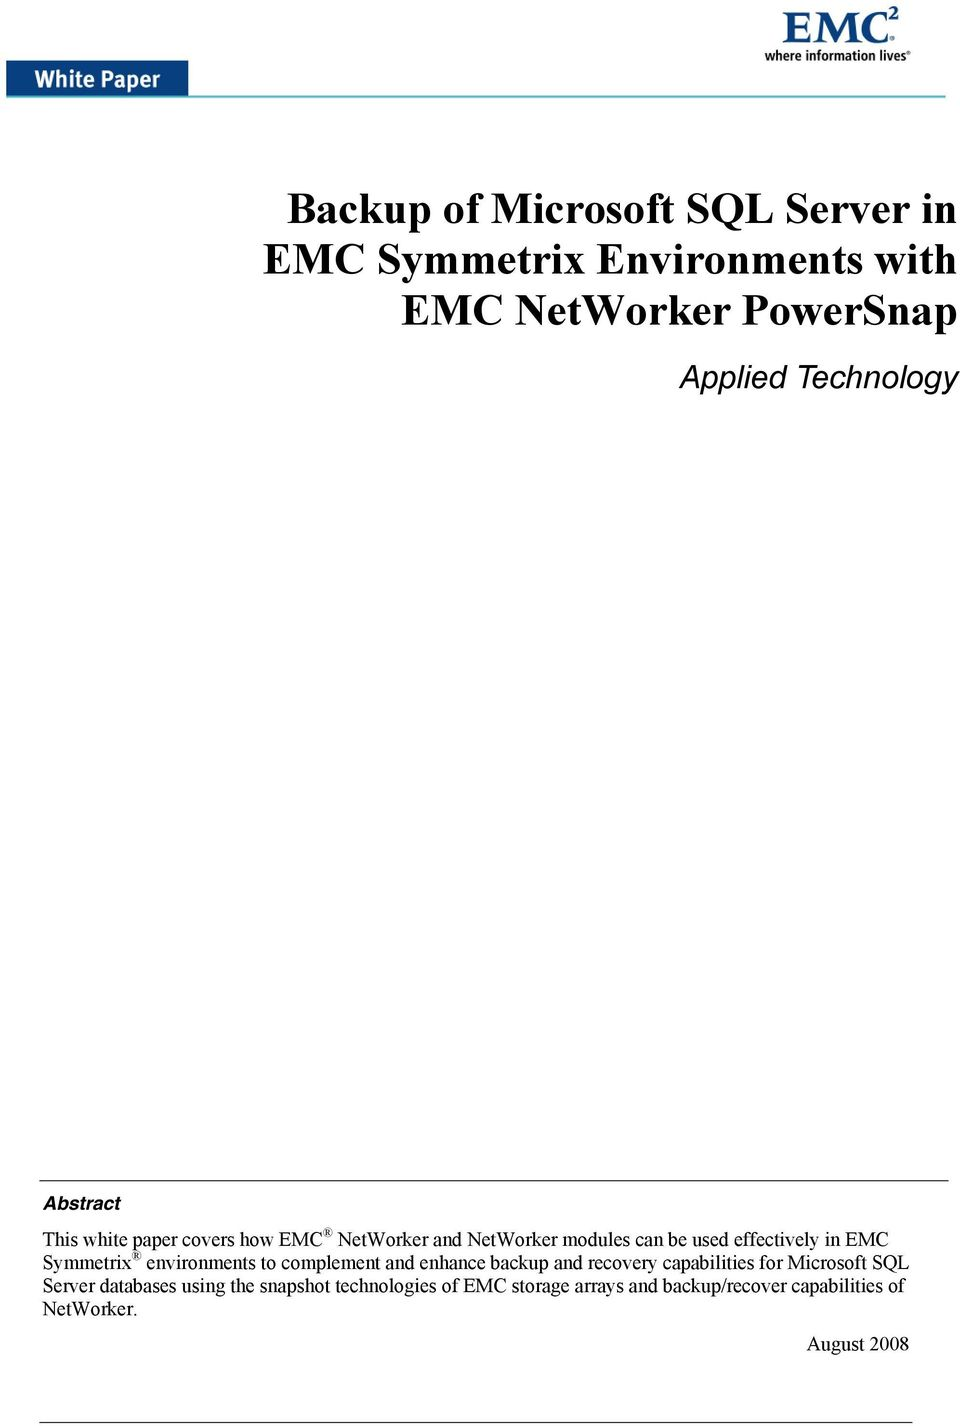 Symmetrix environments to complement and enhance backup and recovery capabilities for Microsoft SQL Server